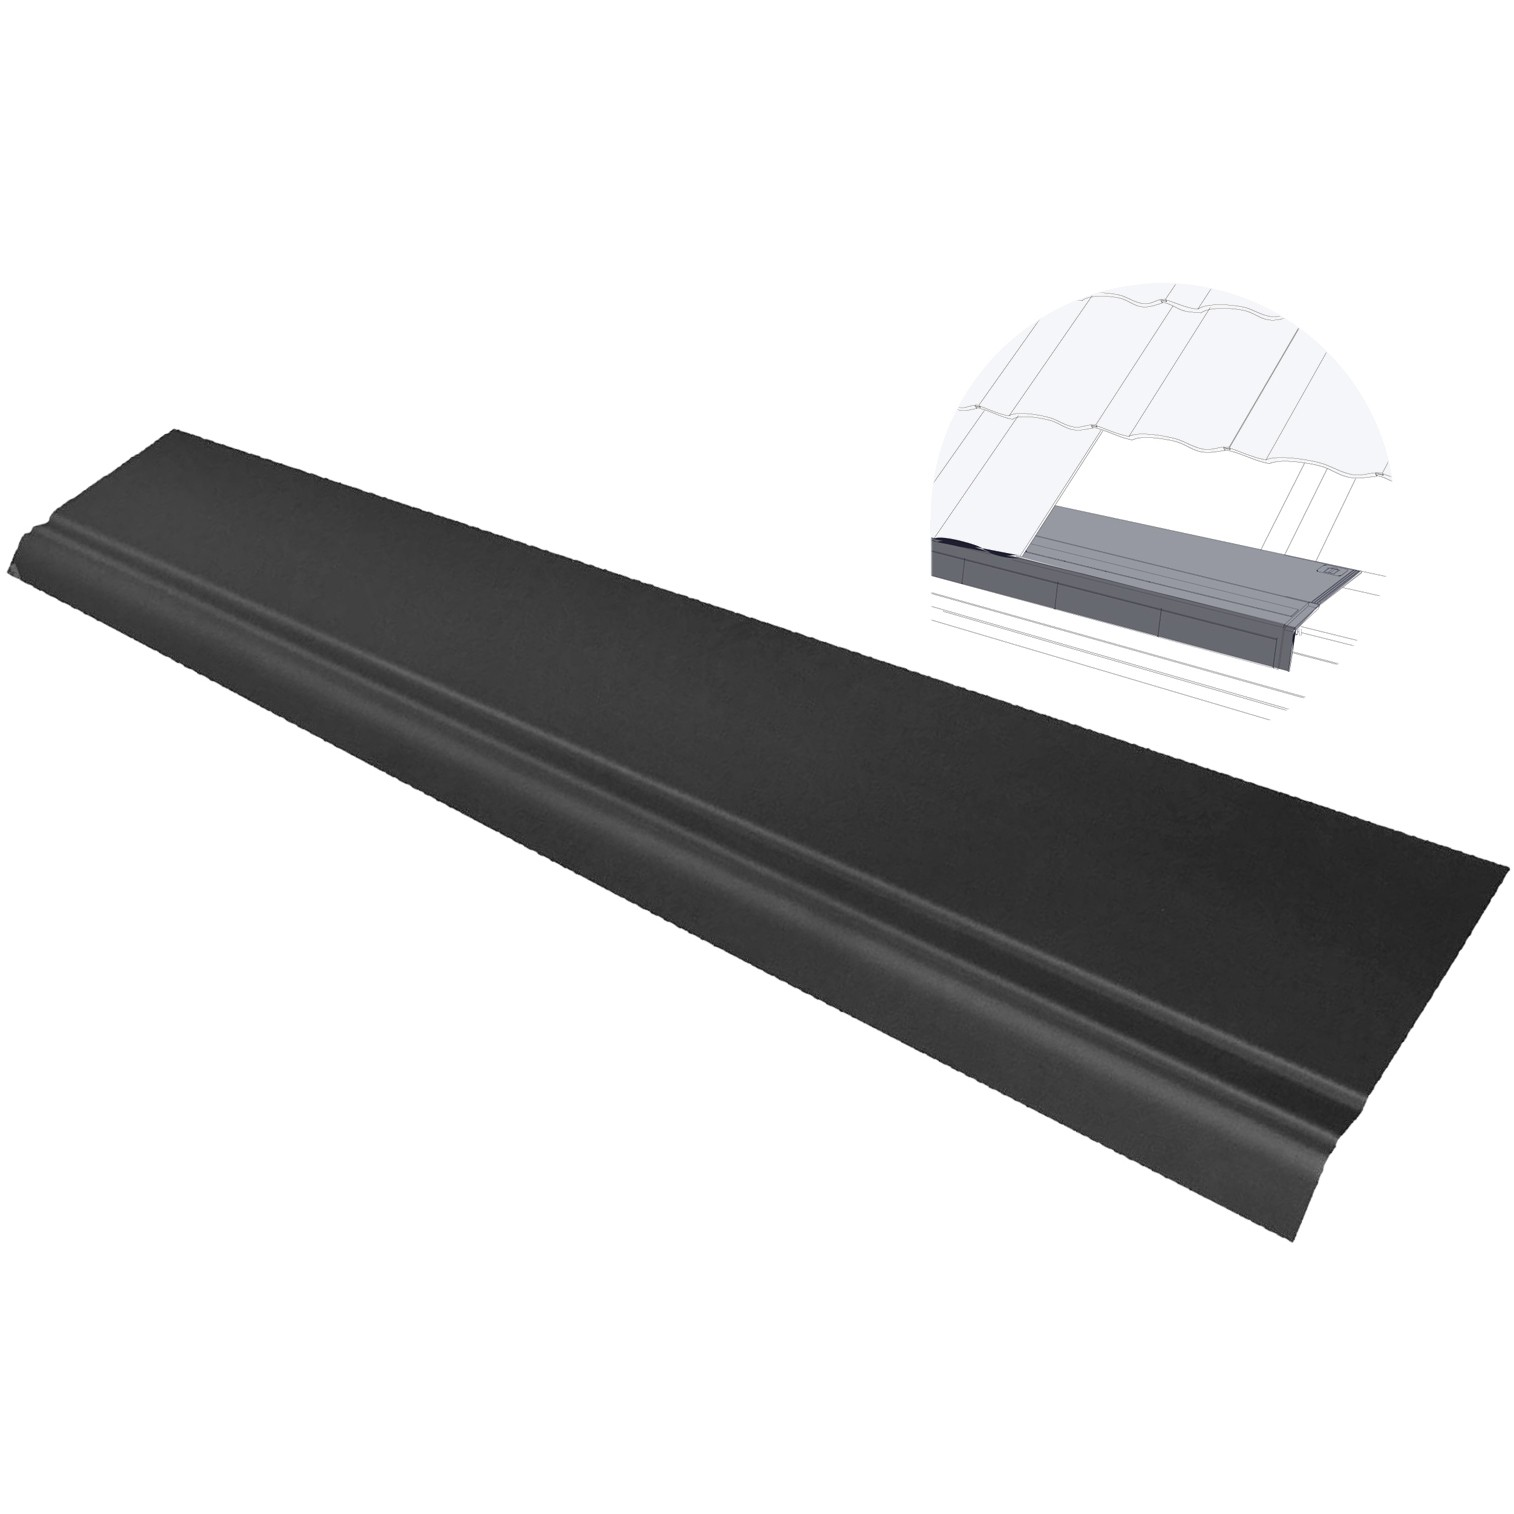 Freefoam Eaves Protector Support Tray - Black, 1.5 metre